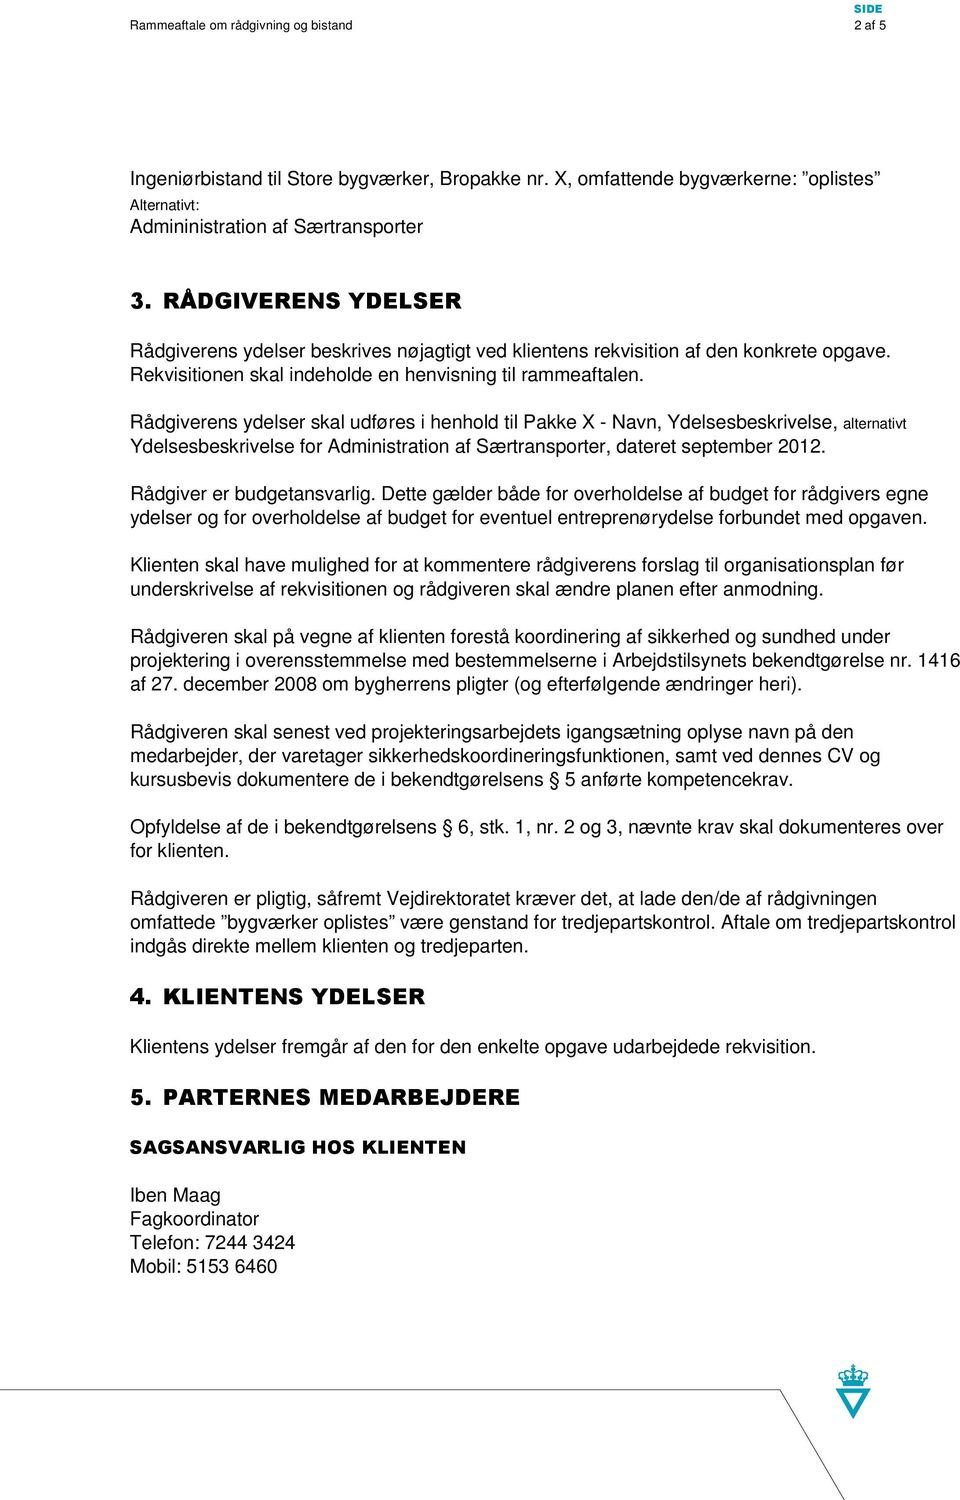 Rådgiverens ydelser skal udføres i henhold til Pakke X - Navn, Ydelsesbeskrivelse, alternativt Ydelsesbeskrivelse for Administration af Særtransporter, dateret september 2012.